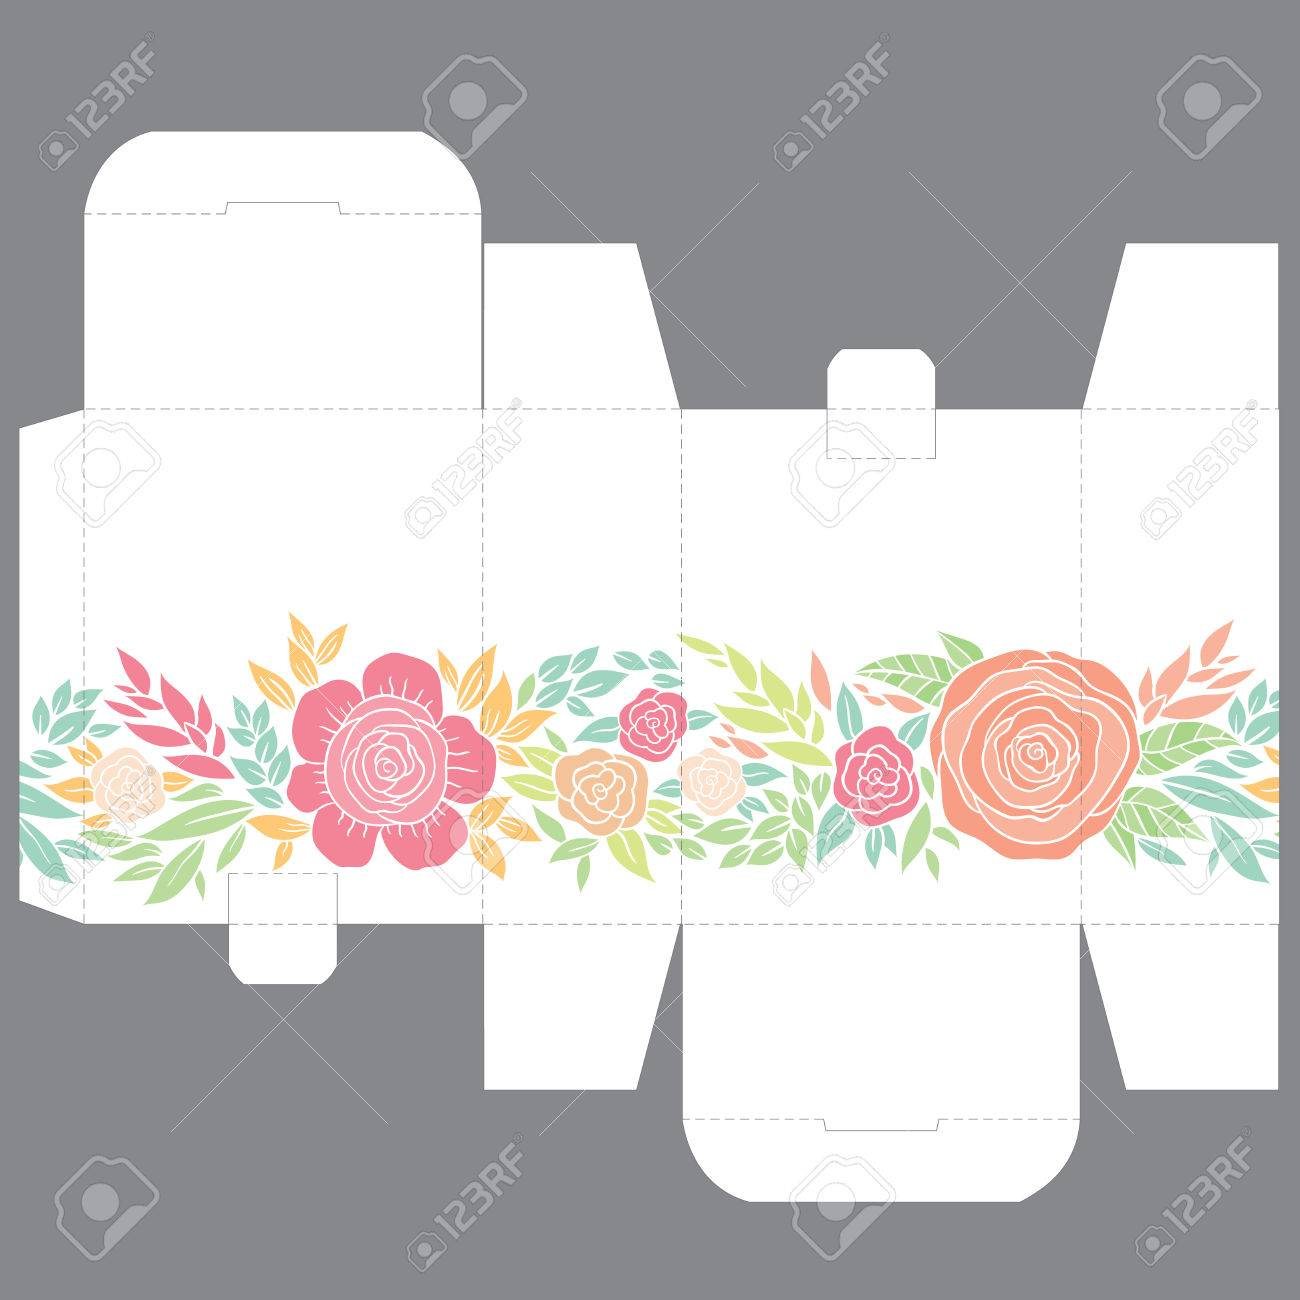 gift wedding favor die box design template with nature pattern